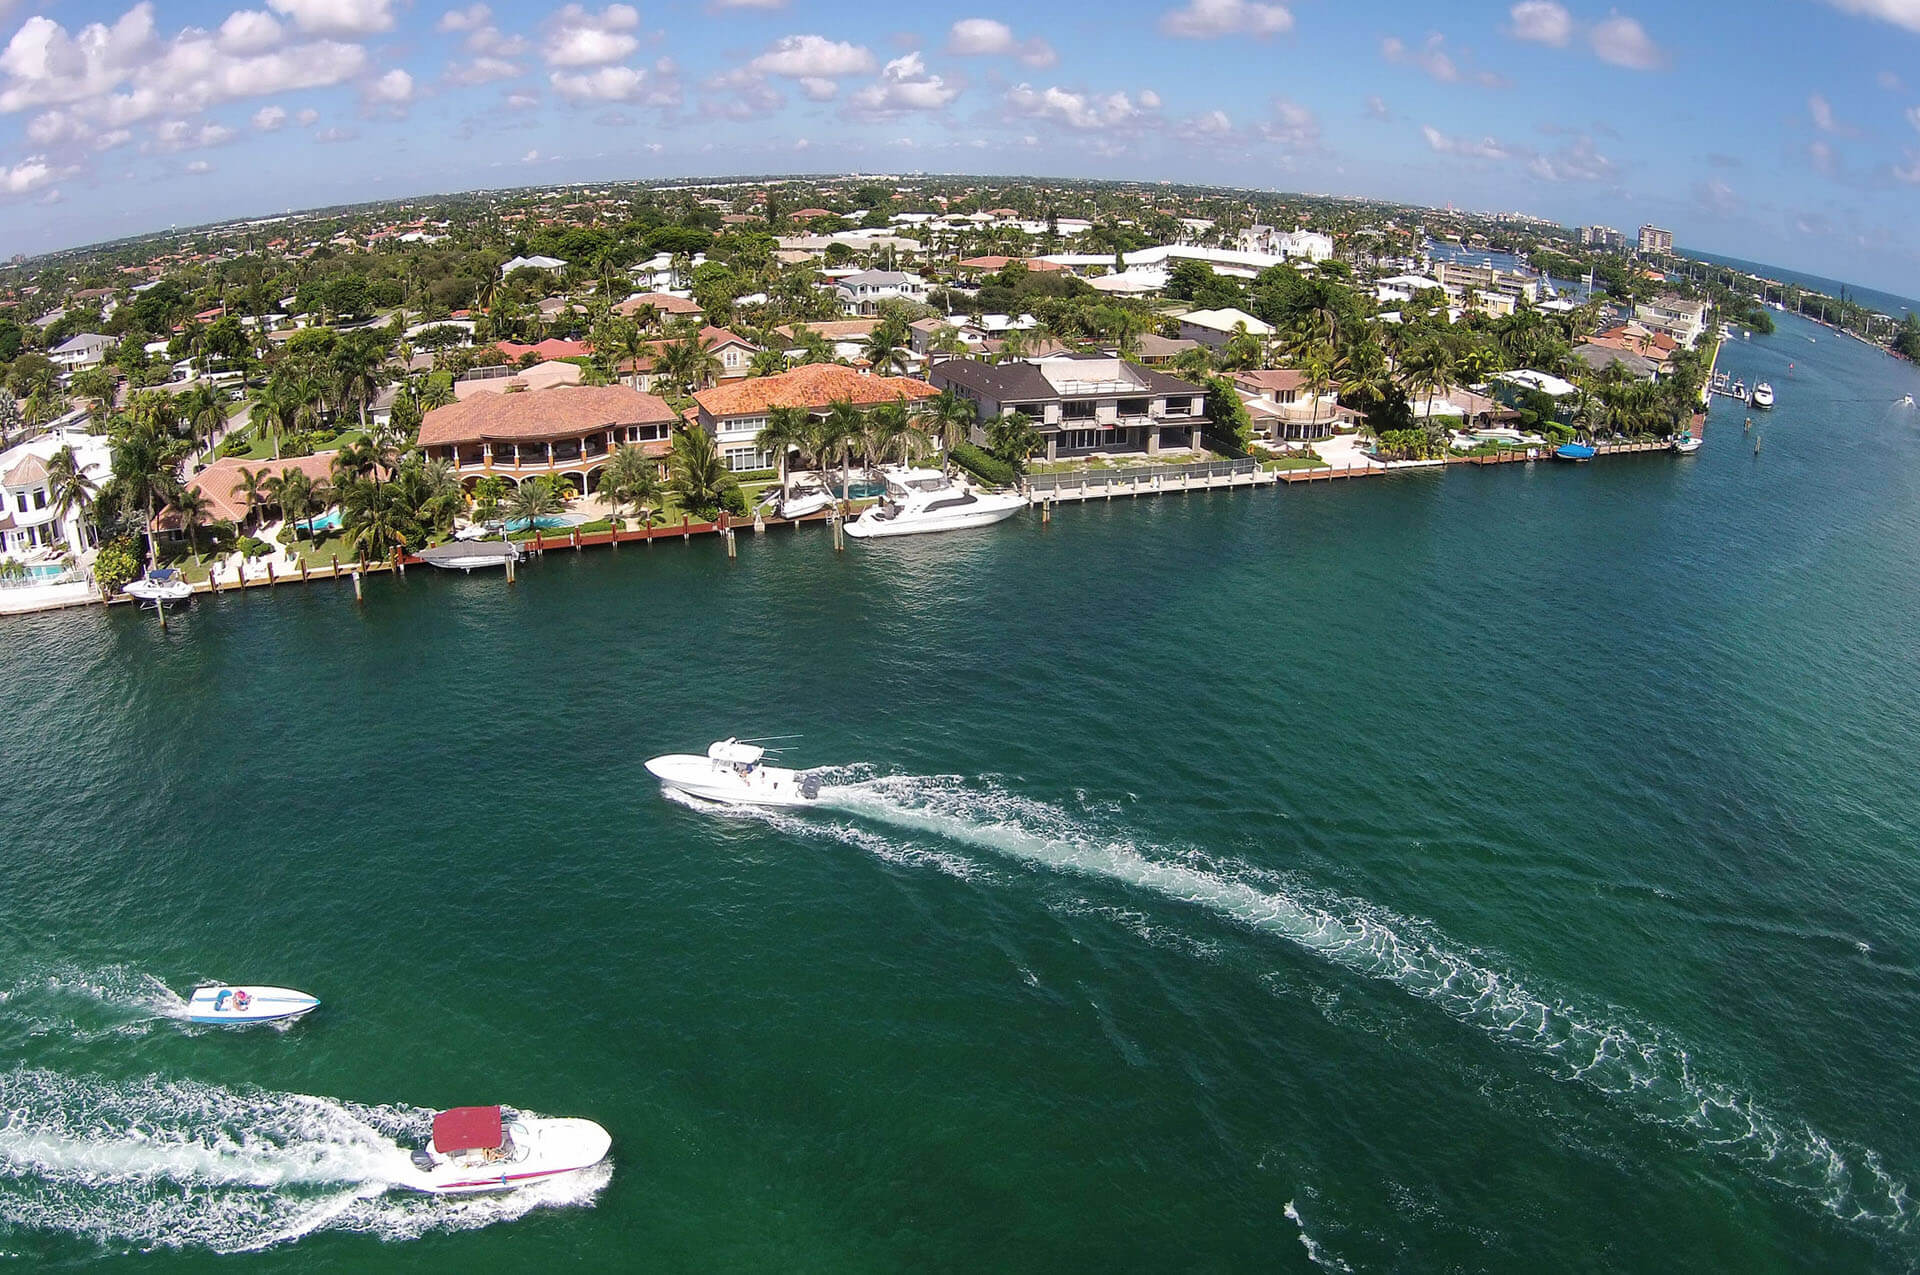 An image of South Florida Waterfront property similar to the real estate that ASR Law Firm helps with Title & Closing services. .